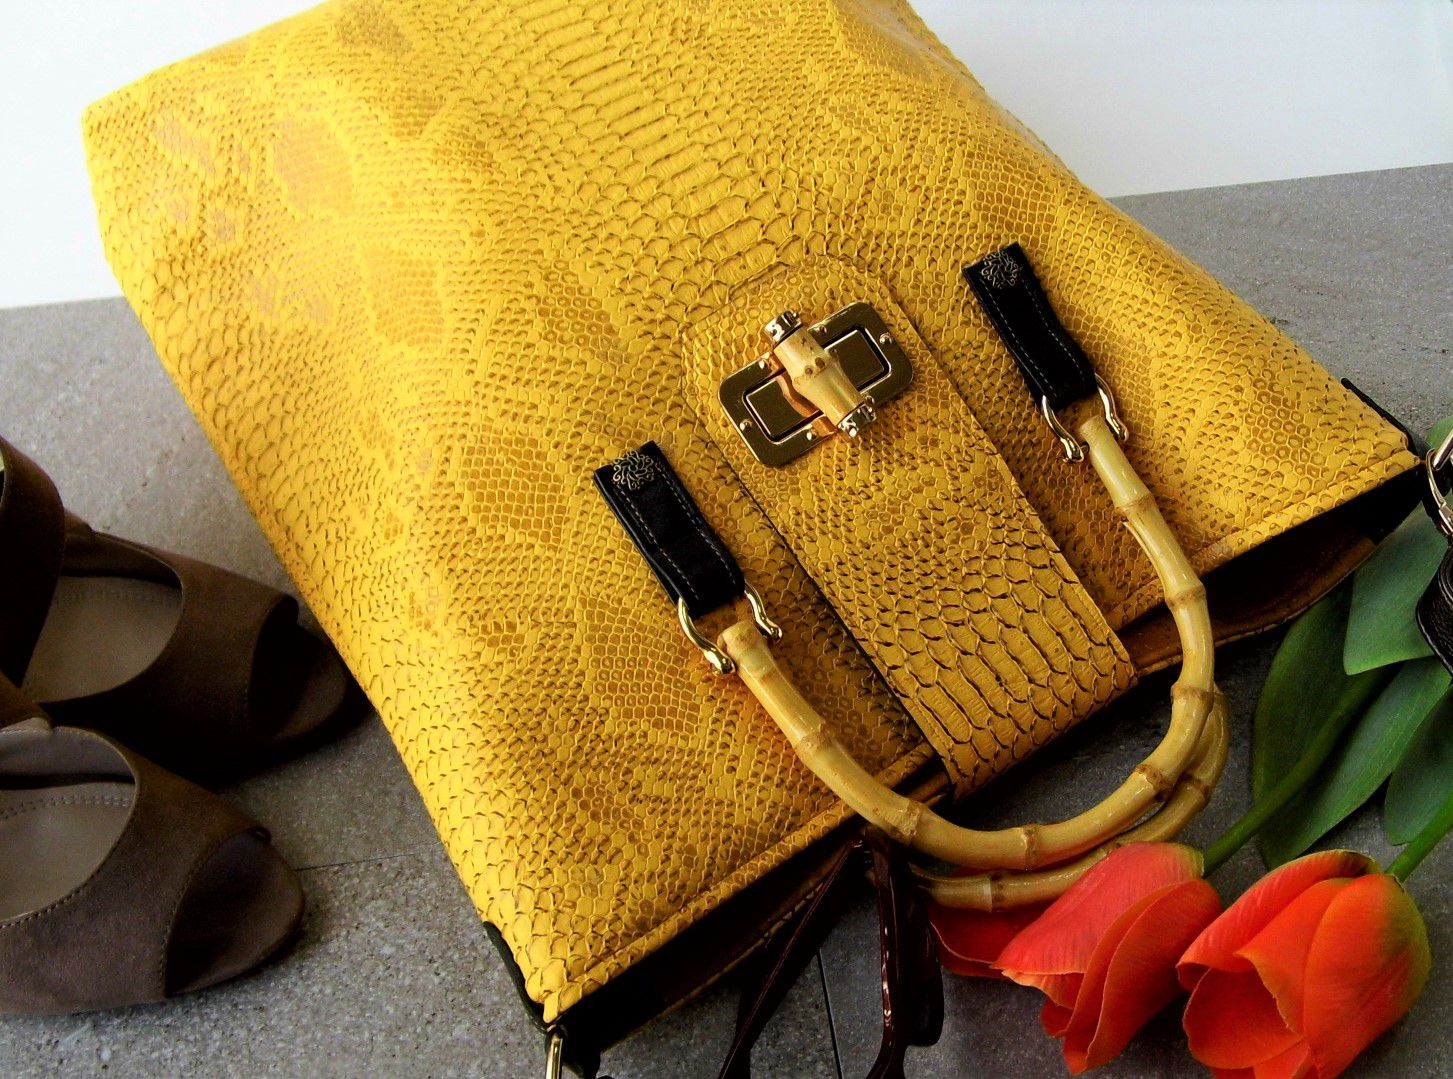 birthday graduation bag leather vegan gift tote handles crocodile reptile weekend faux mustard large work yellow bamboo